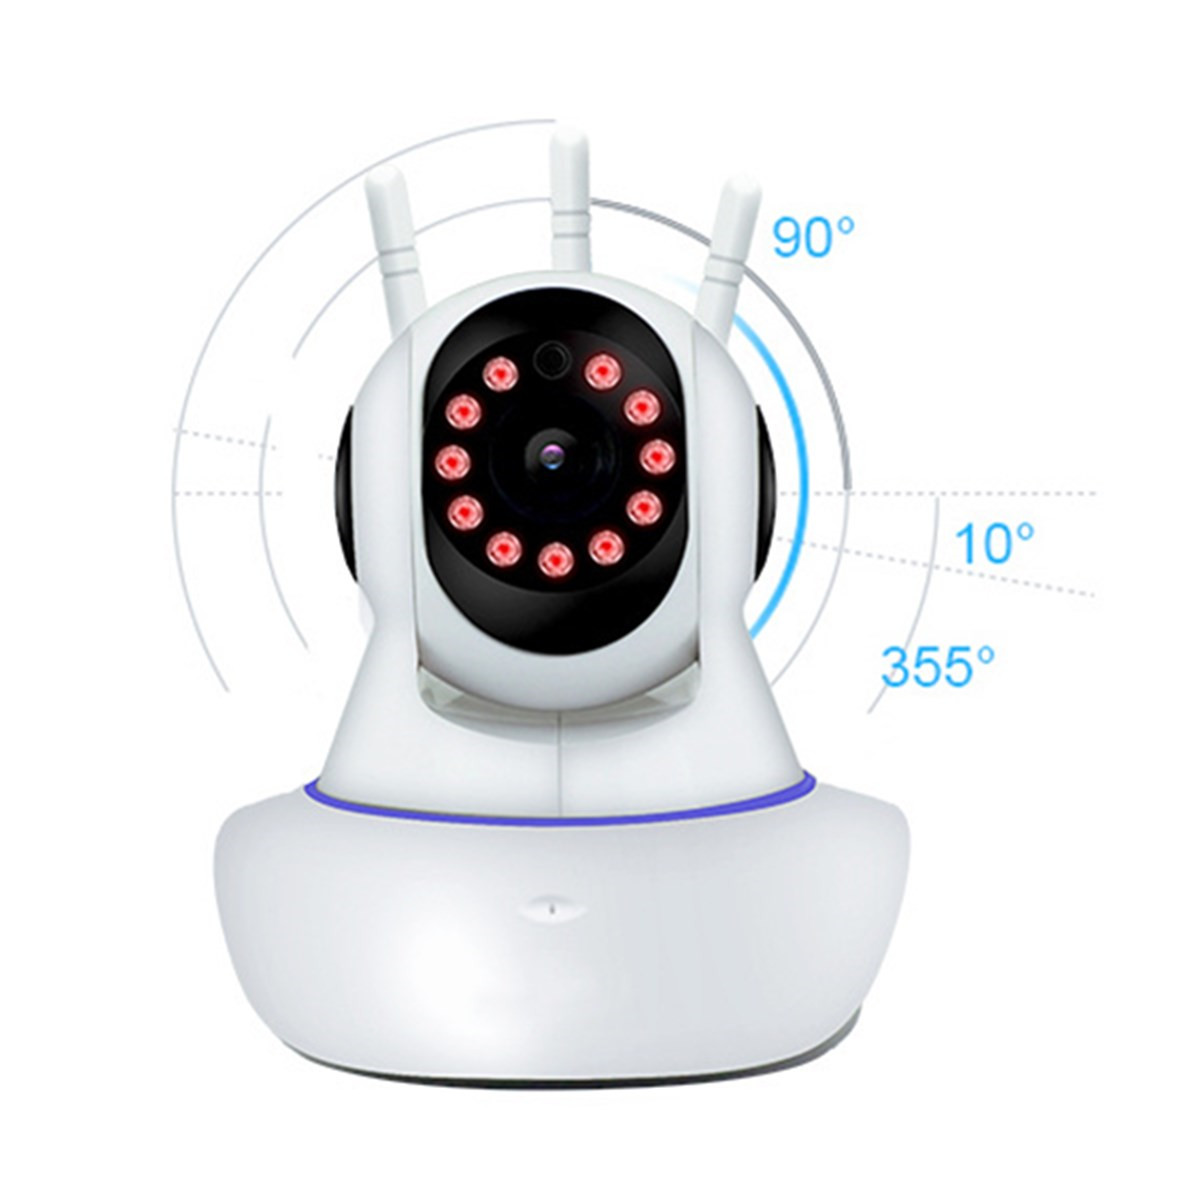 1080P 360° Panoramic Wireless Wifi Security IP Camera Monitor Night Vision CCTV